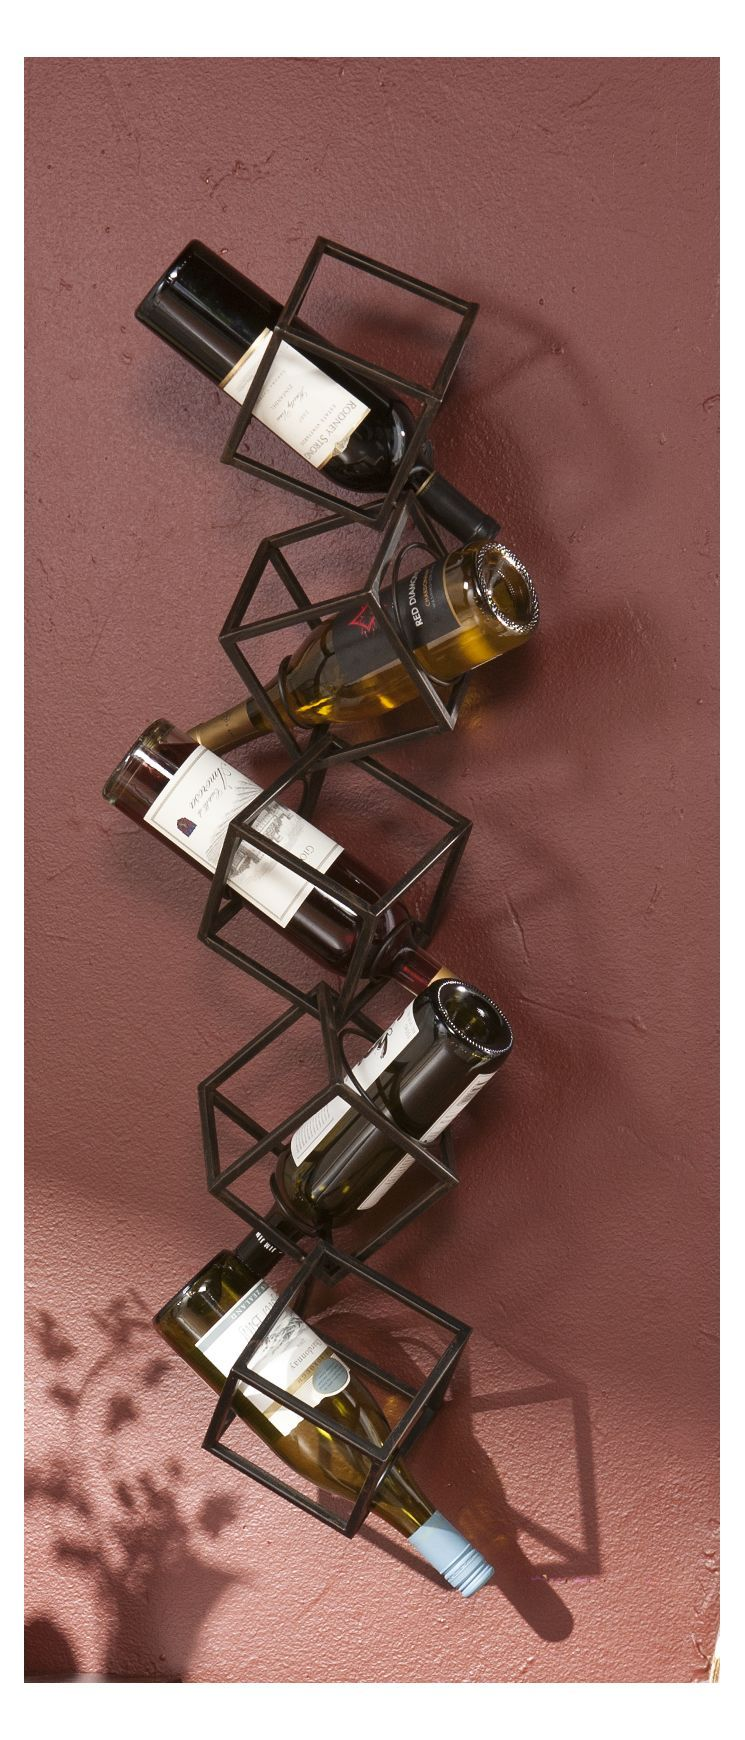 Carini 5 Bottle Wall Mounted Wine Rack Wine Rack Wall Wall Mounted Wine Rack Bottle Wall